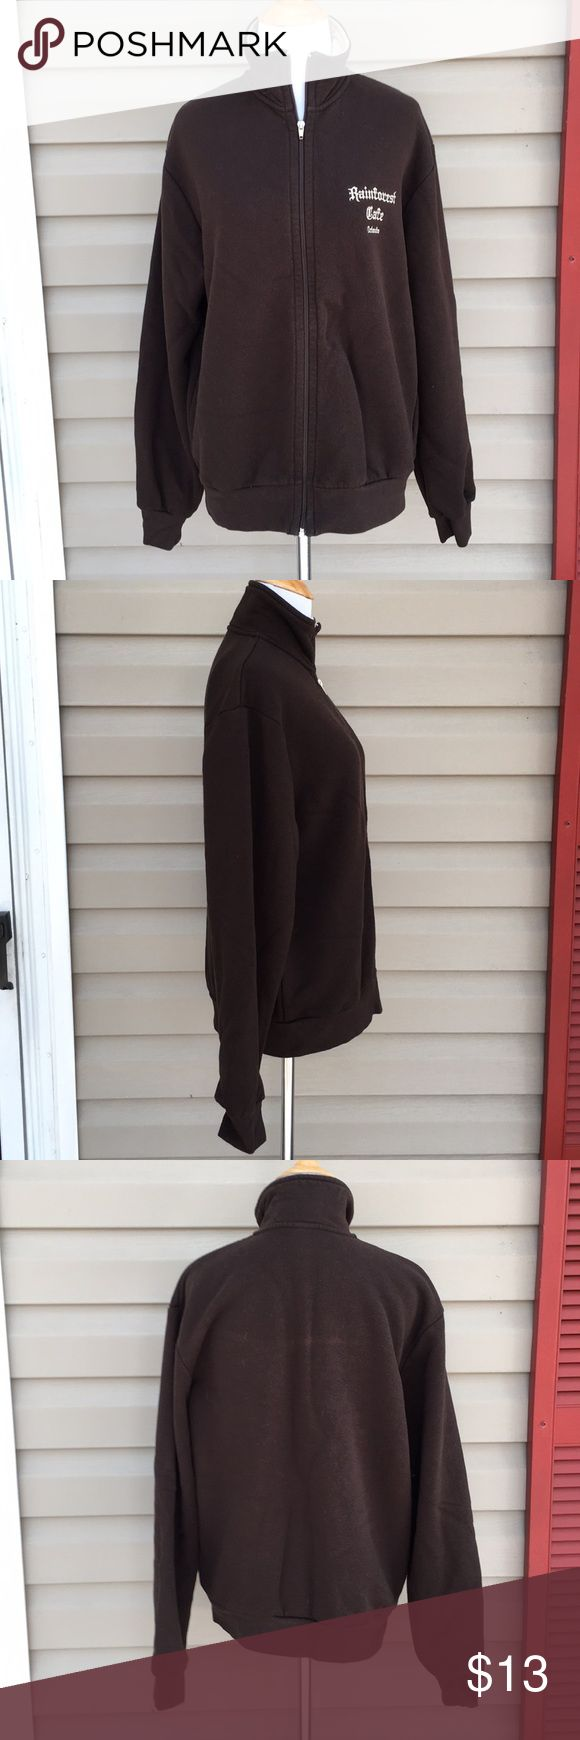 """Rainforest cafe women's brown zip front jacket Like new brown zip front fleece jacket with tan collar, 'Rainforest cafe, Orlando ' on front.80% cotton 20% polyester, no snags, stains, fading or holes. 22""""W x 26""""L Rainforest Cafe Tops Sweatshirts & Hoodies"""